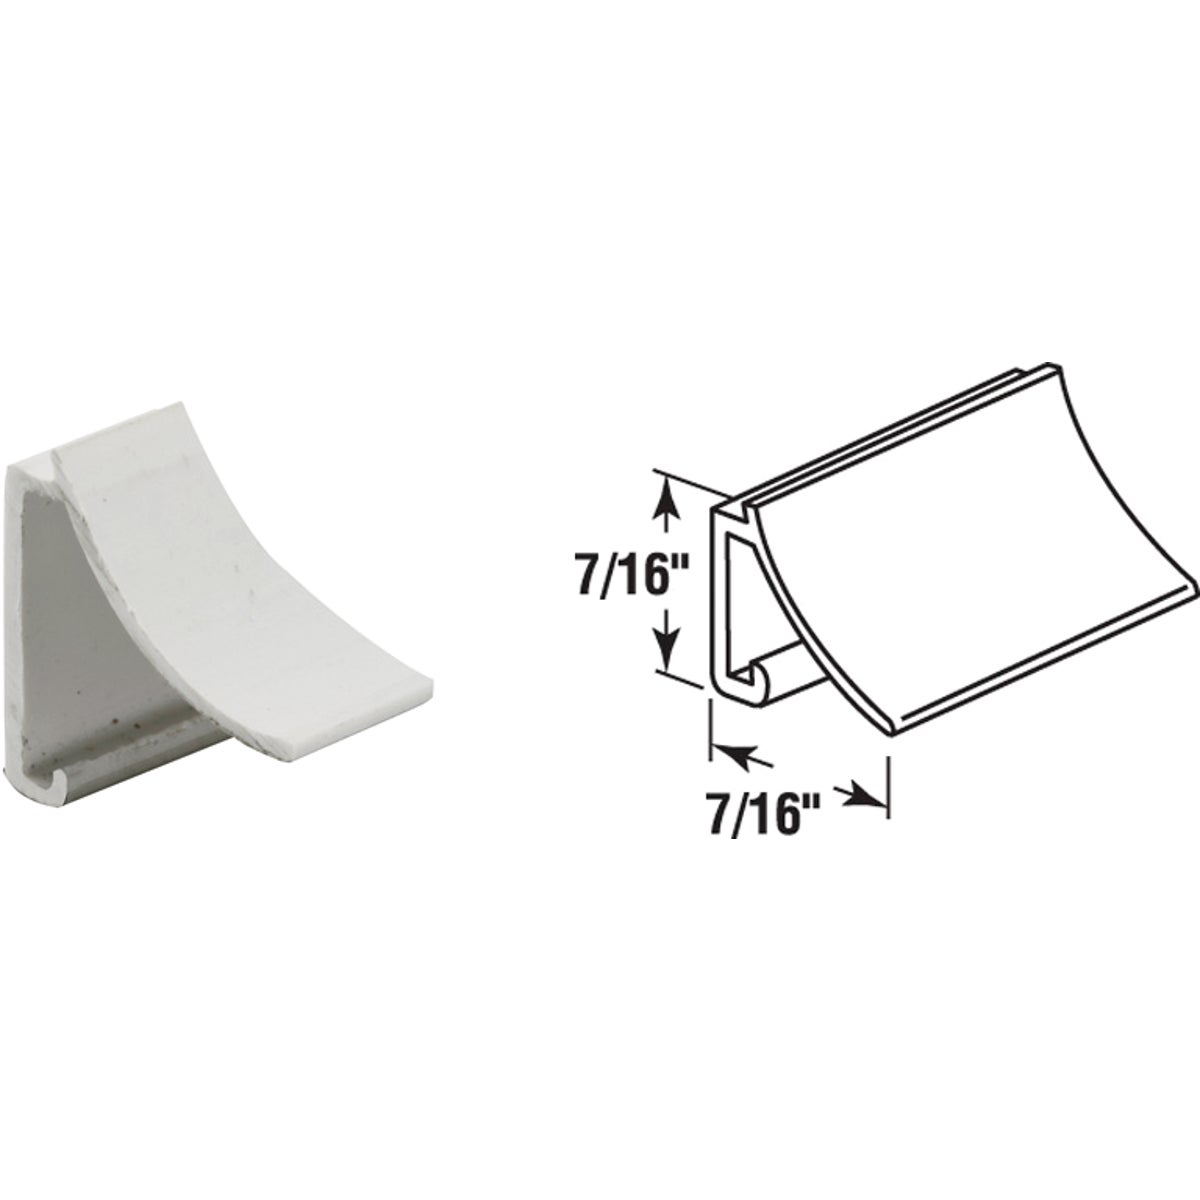 "72"" WHT RIGID SPLINE - P7866 by Prime Line Products"